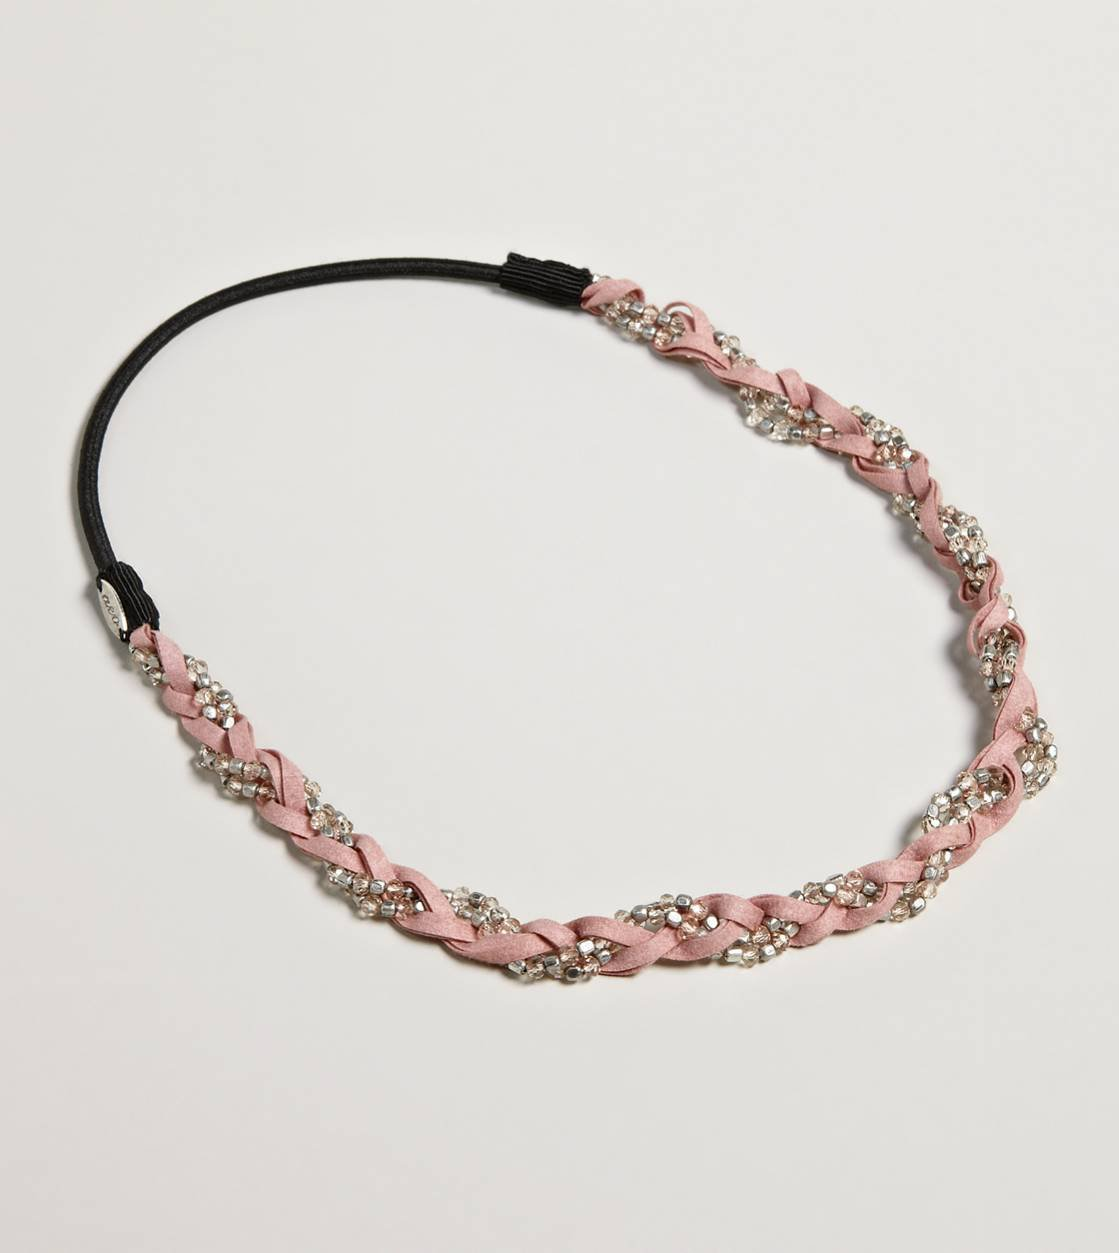 AEO Bead &amp; Braid Headwrap | American Eagle Outfitters